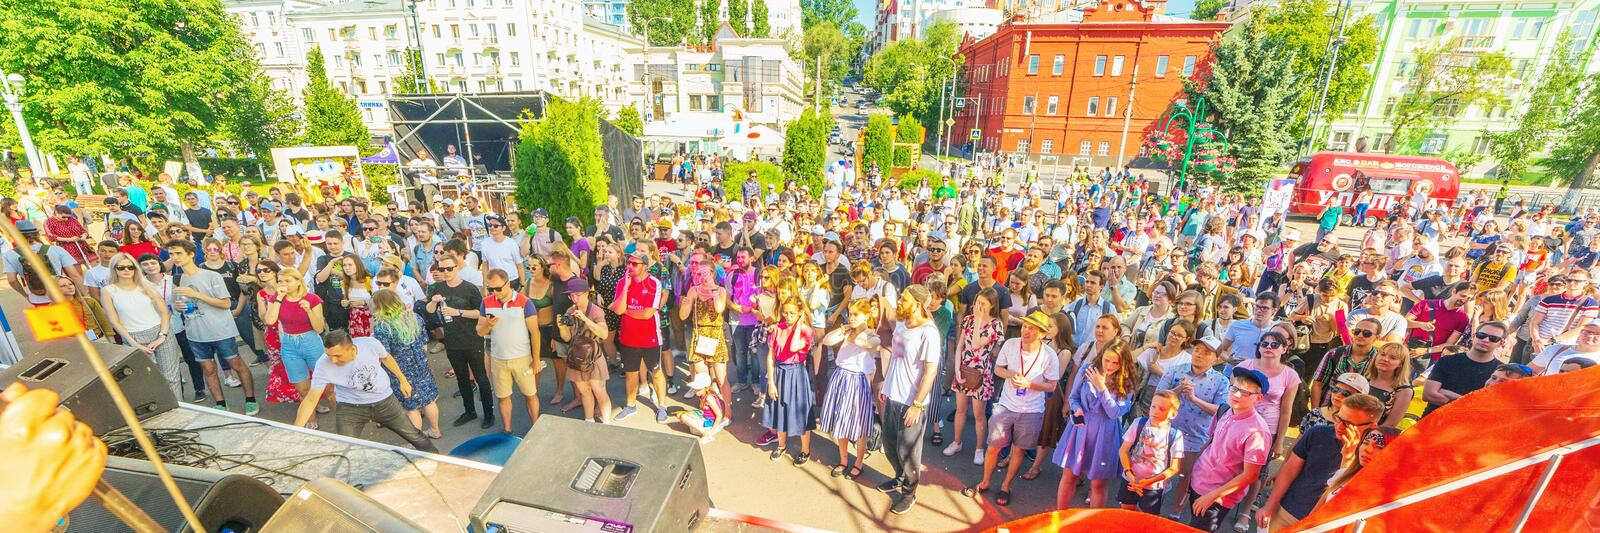 City vacationers watch a musical performance in the open air. Russia, Samara, June 2019. City vacationers watch a musical performance in the open air royalty free stock images